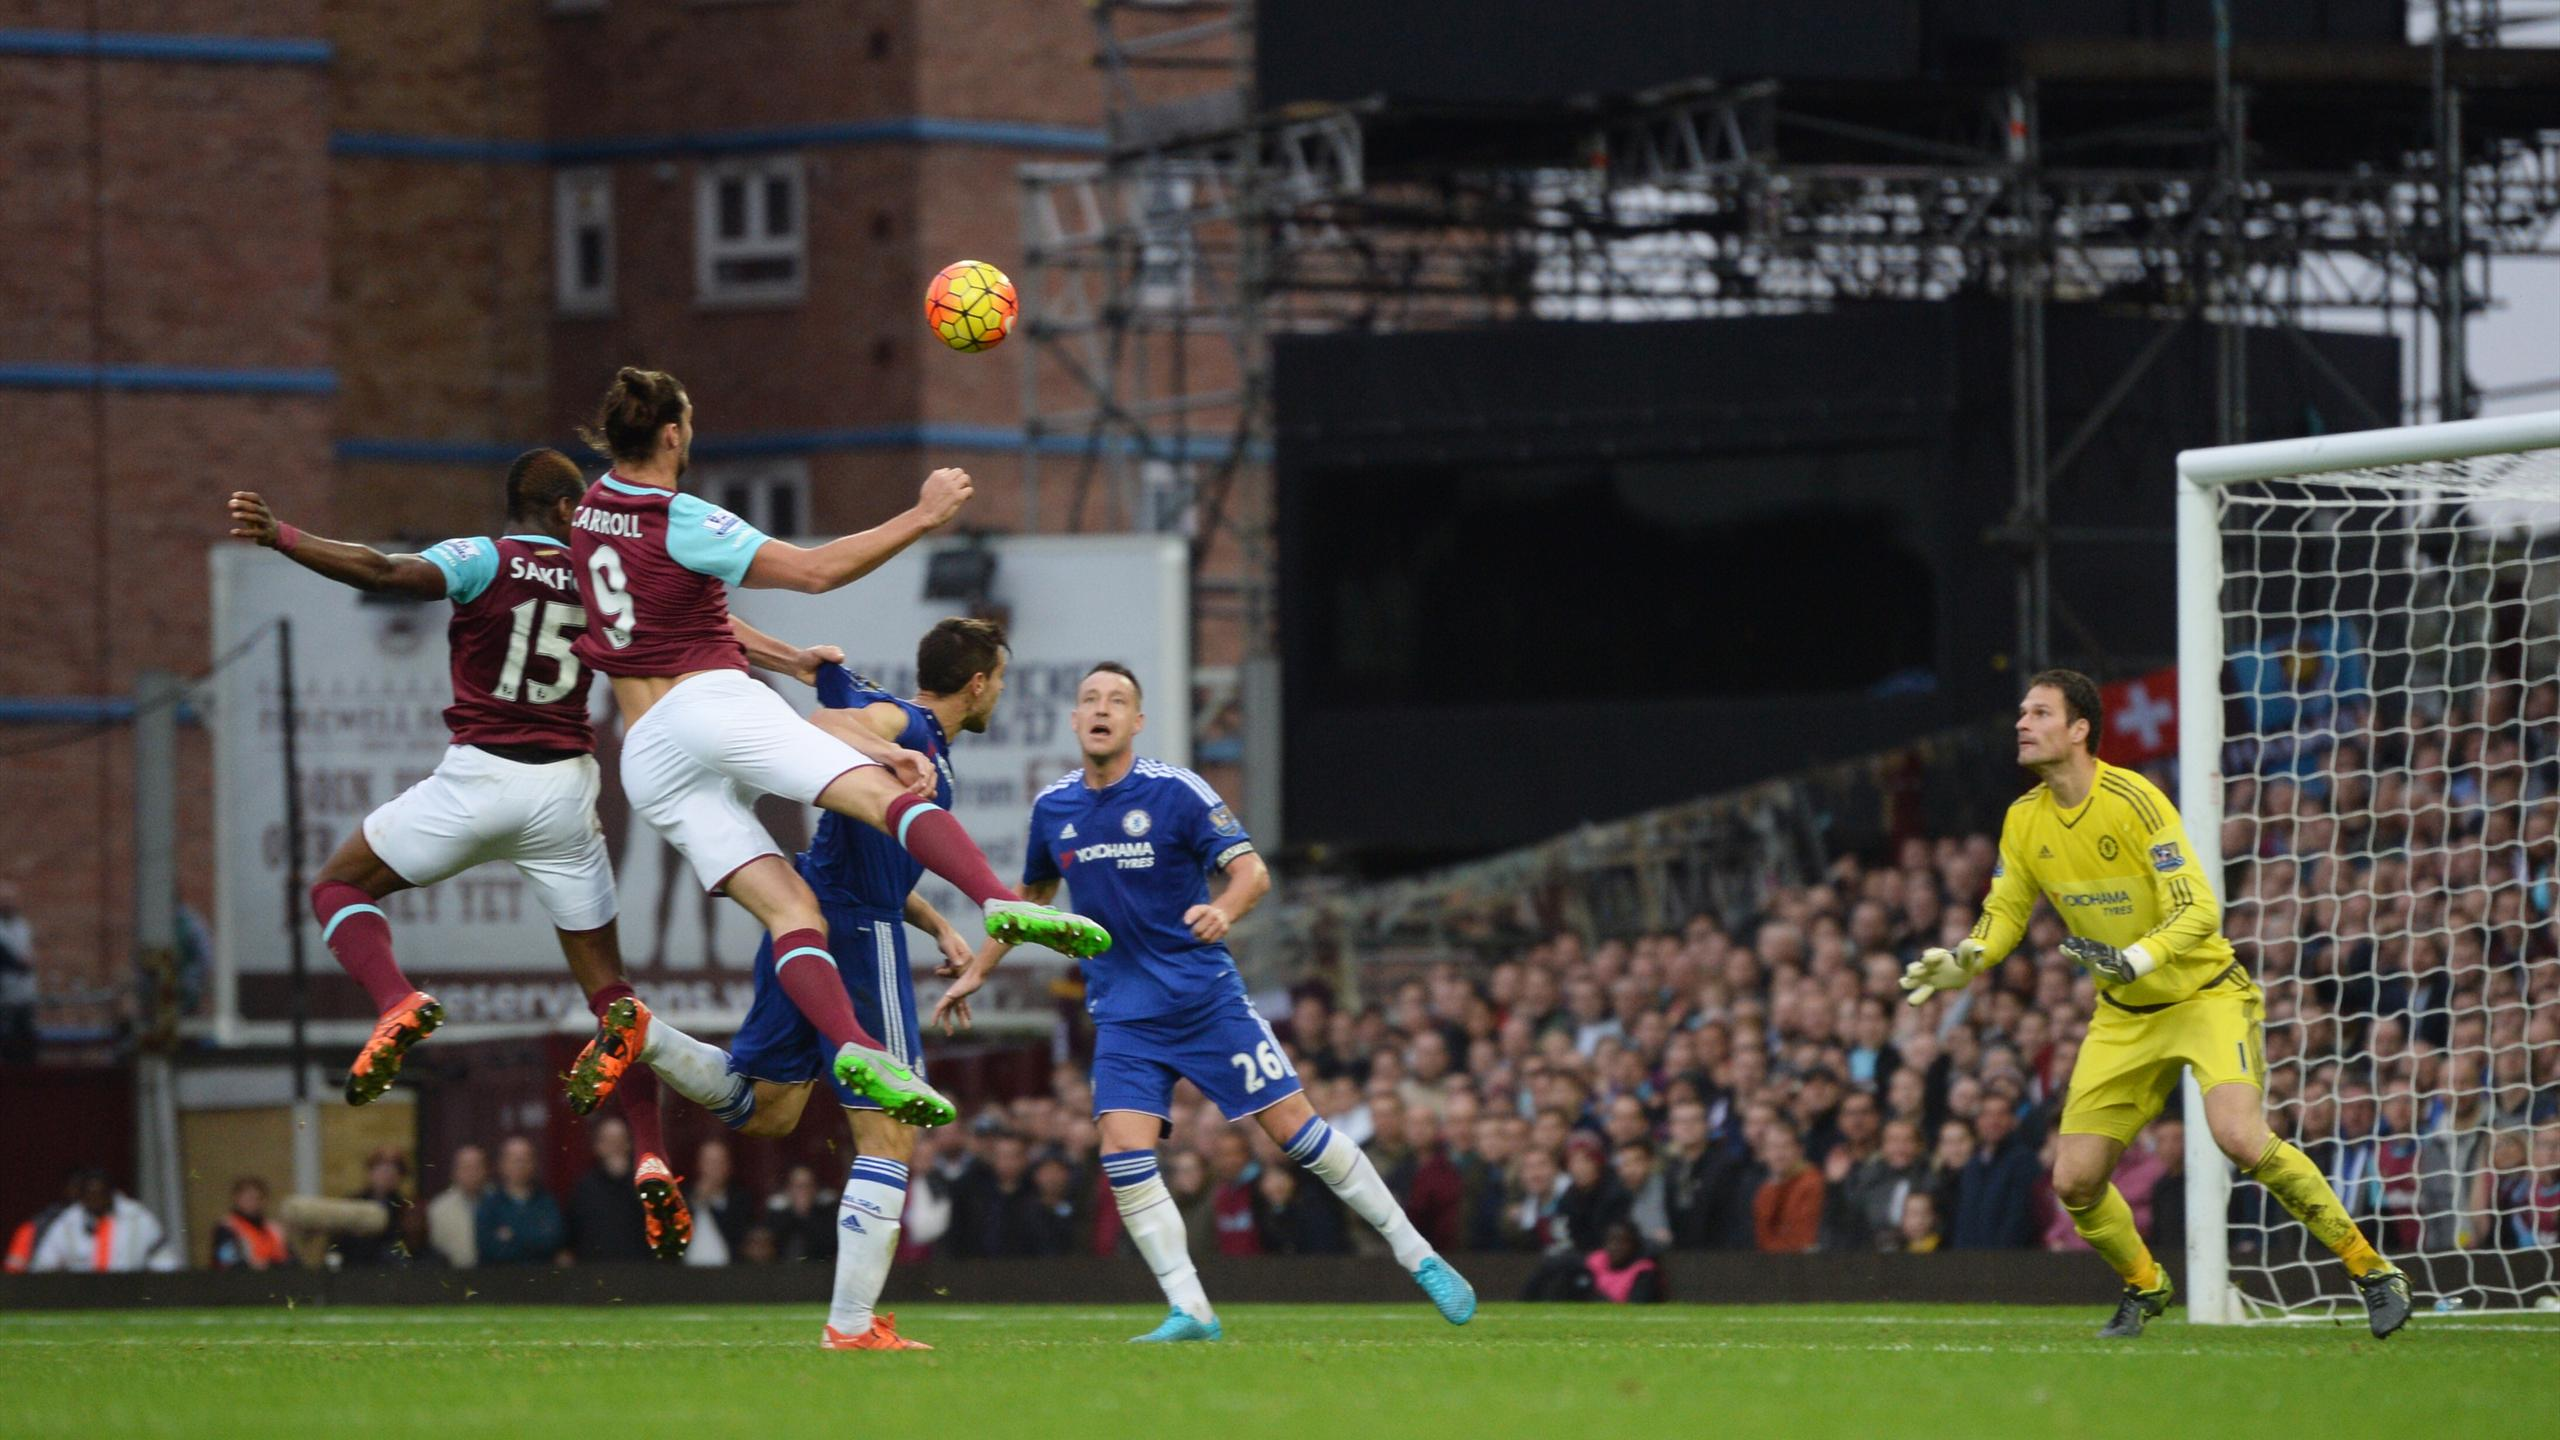 Andy Carroll heads the winning goal for West Ham against Chelsea